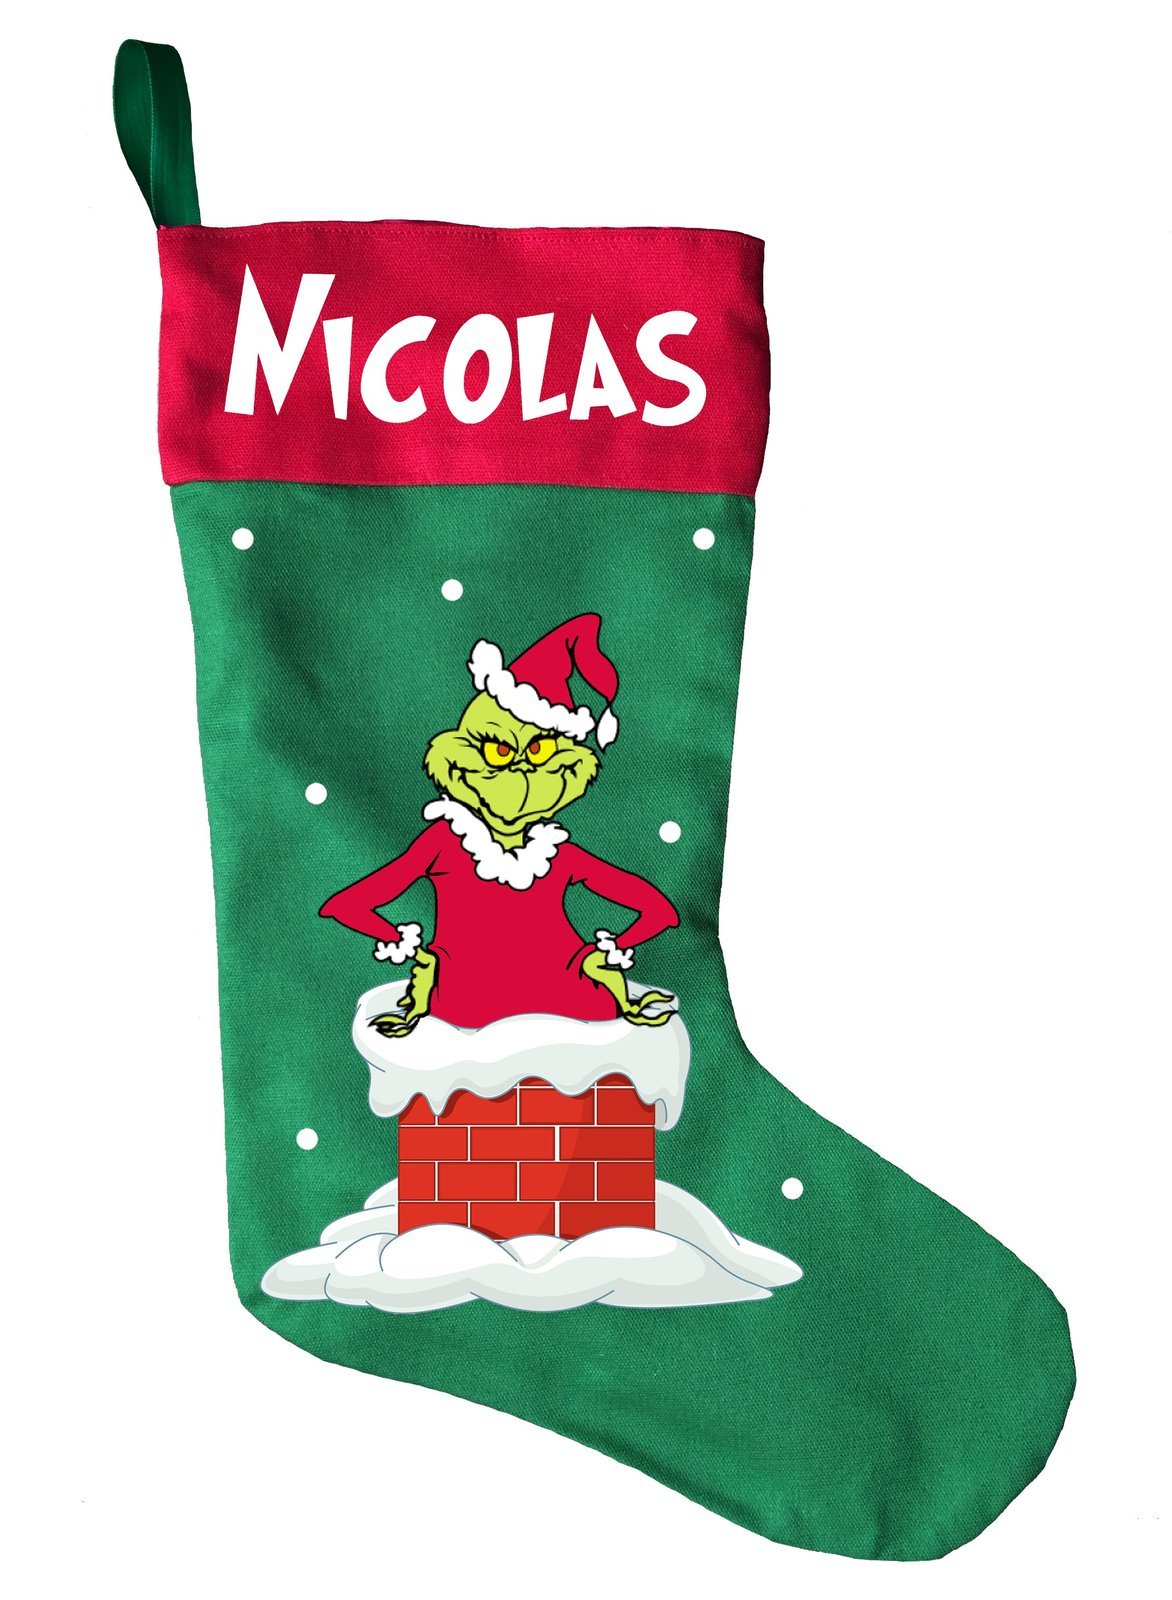 The Grinch Christmas Stocking - Personalized and Hand Made Grinch Christmas Stoc for sale  USA